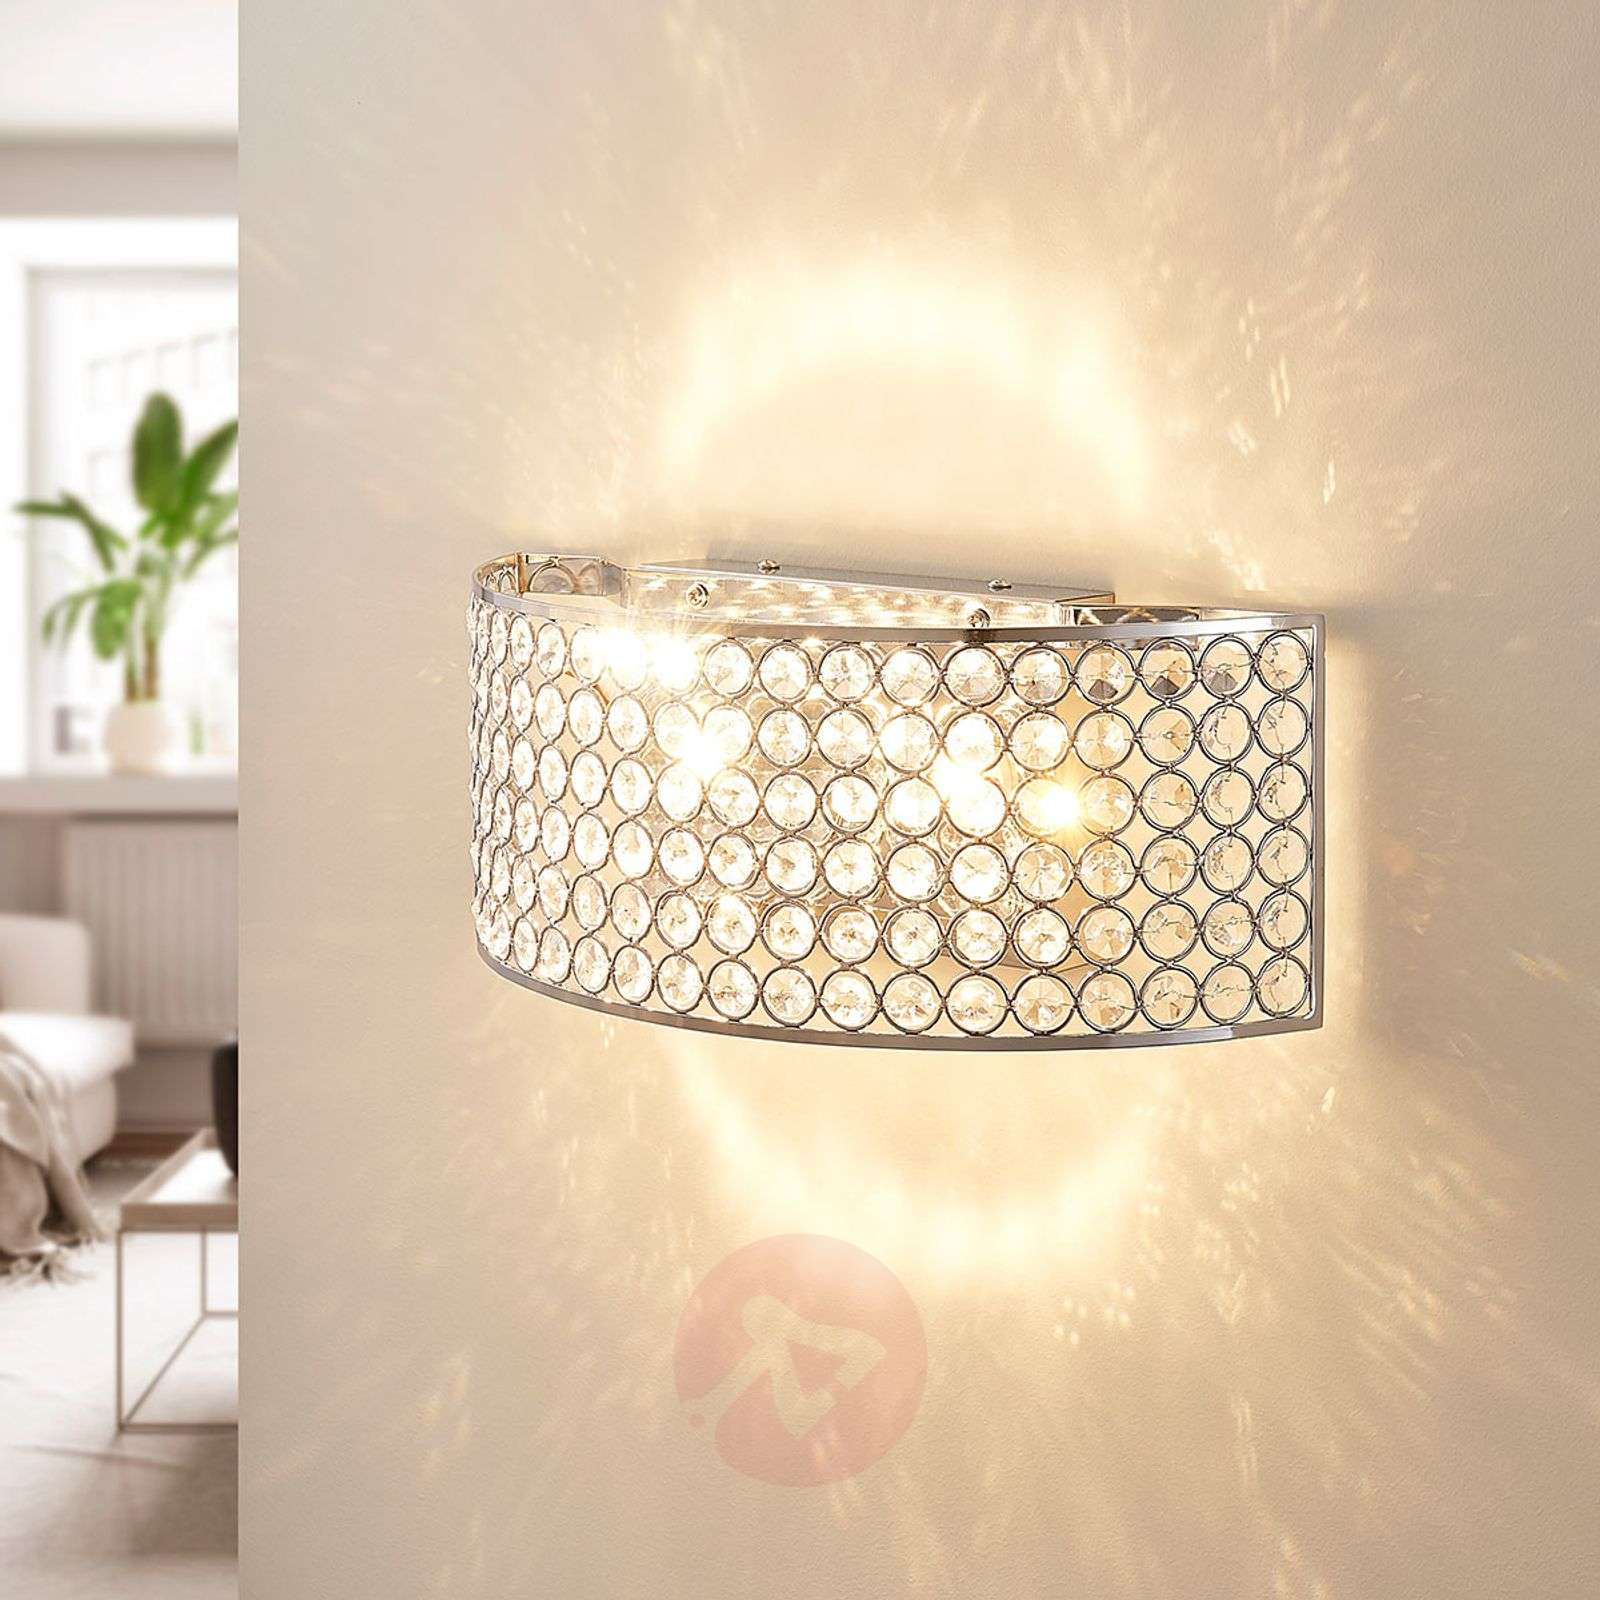 Led Gl Crystal Wall Light Alizee In Chrome